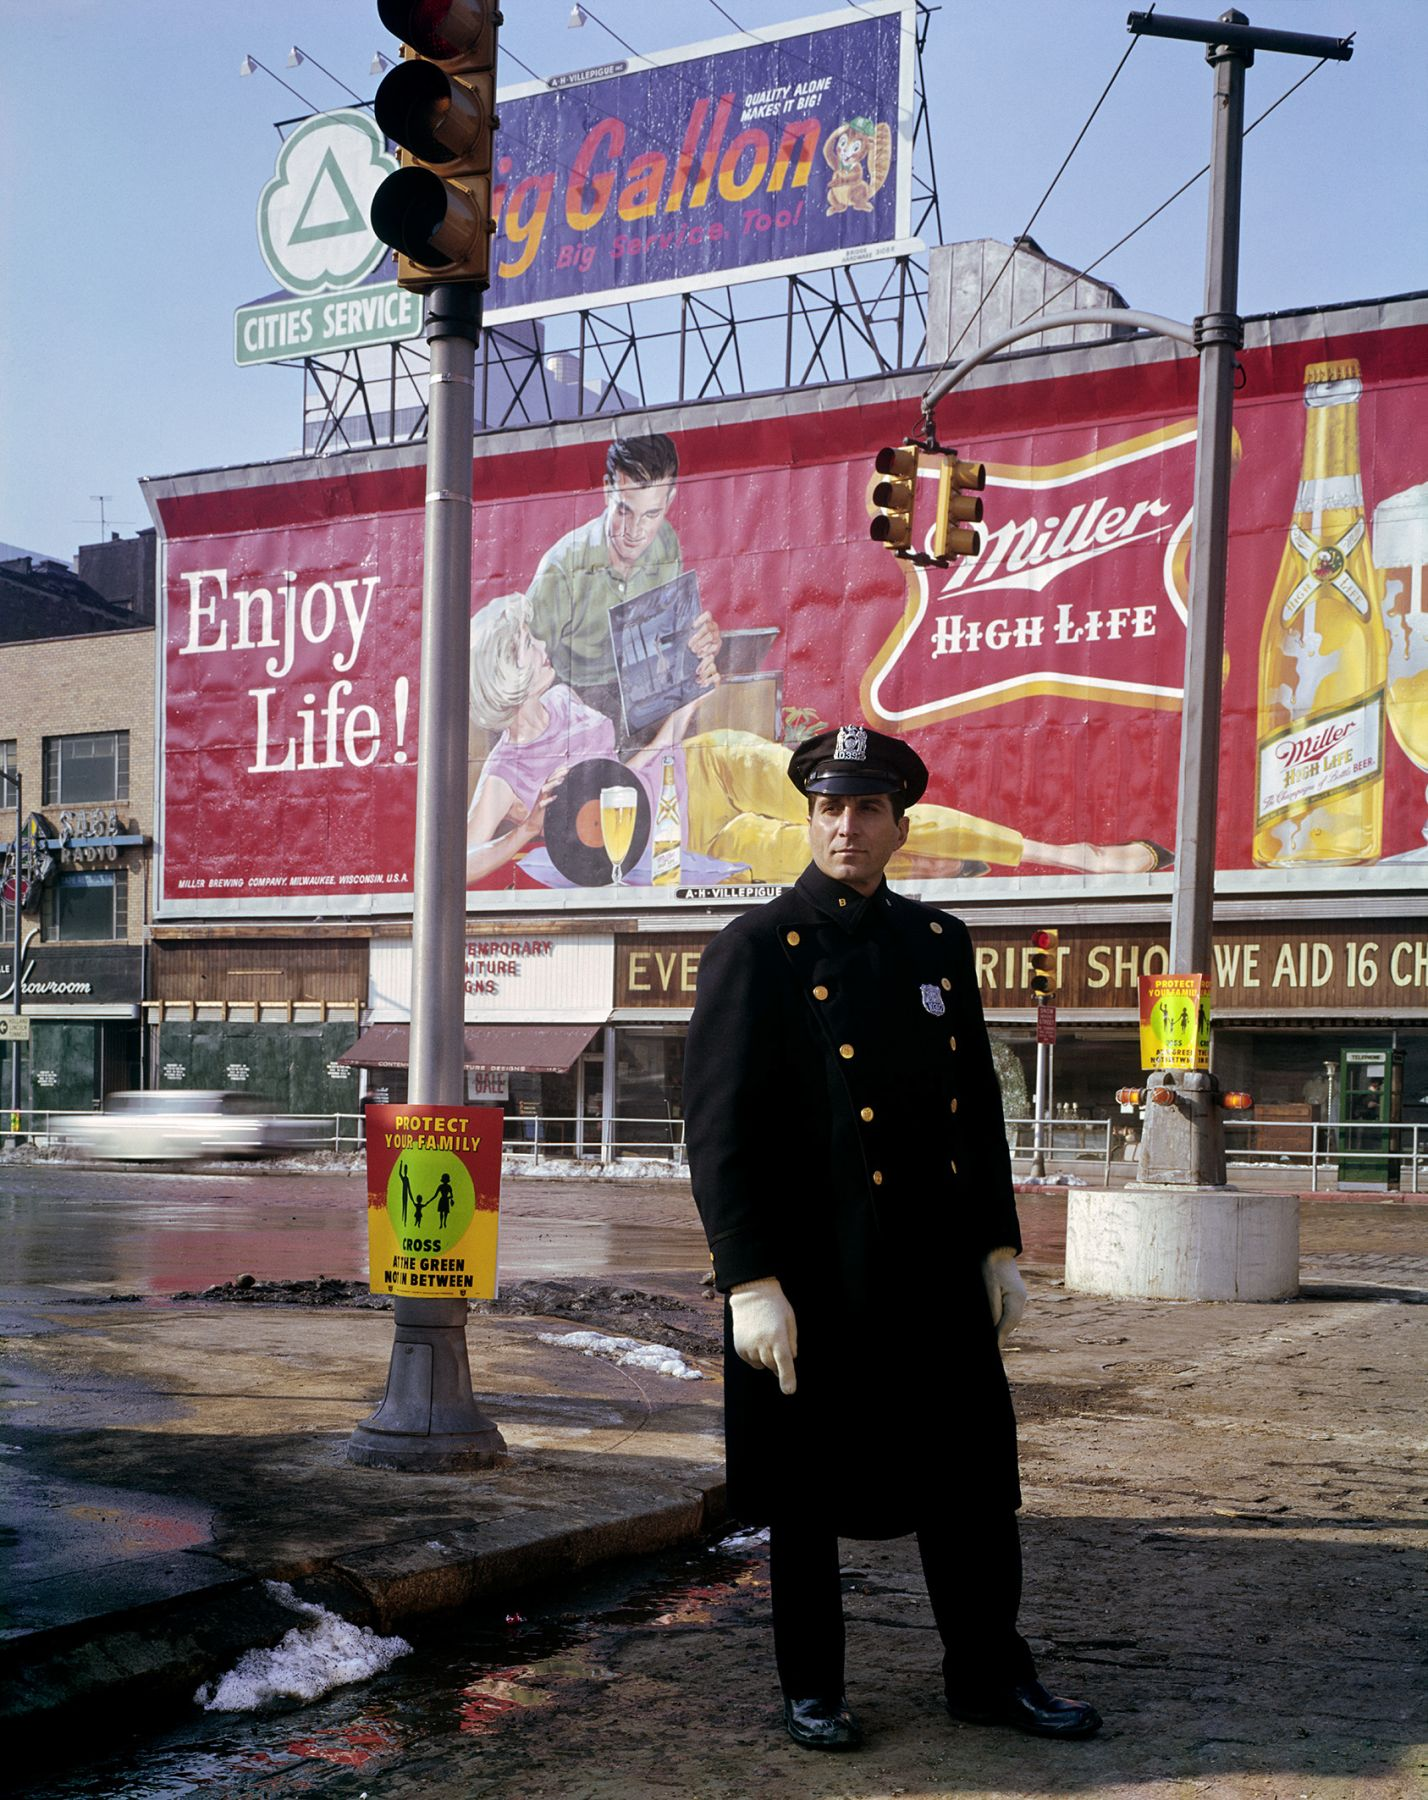 Policeman, 59th St., New York. 1964, 20 x 16 inch dye transfer print